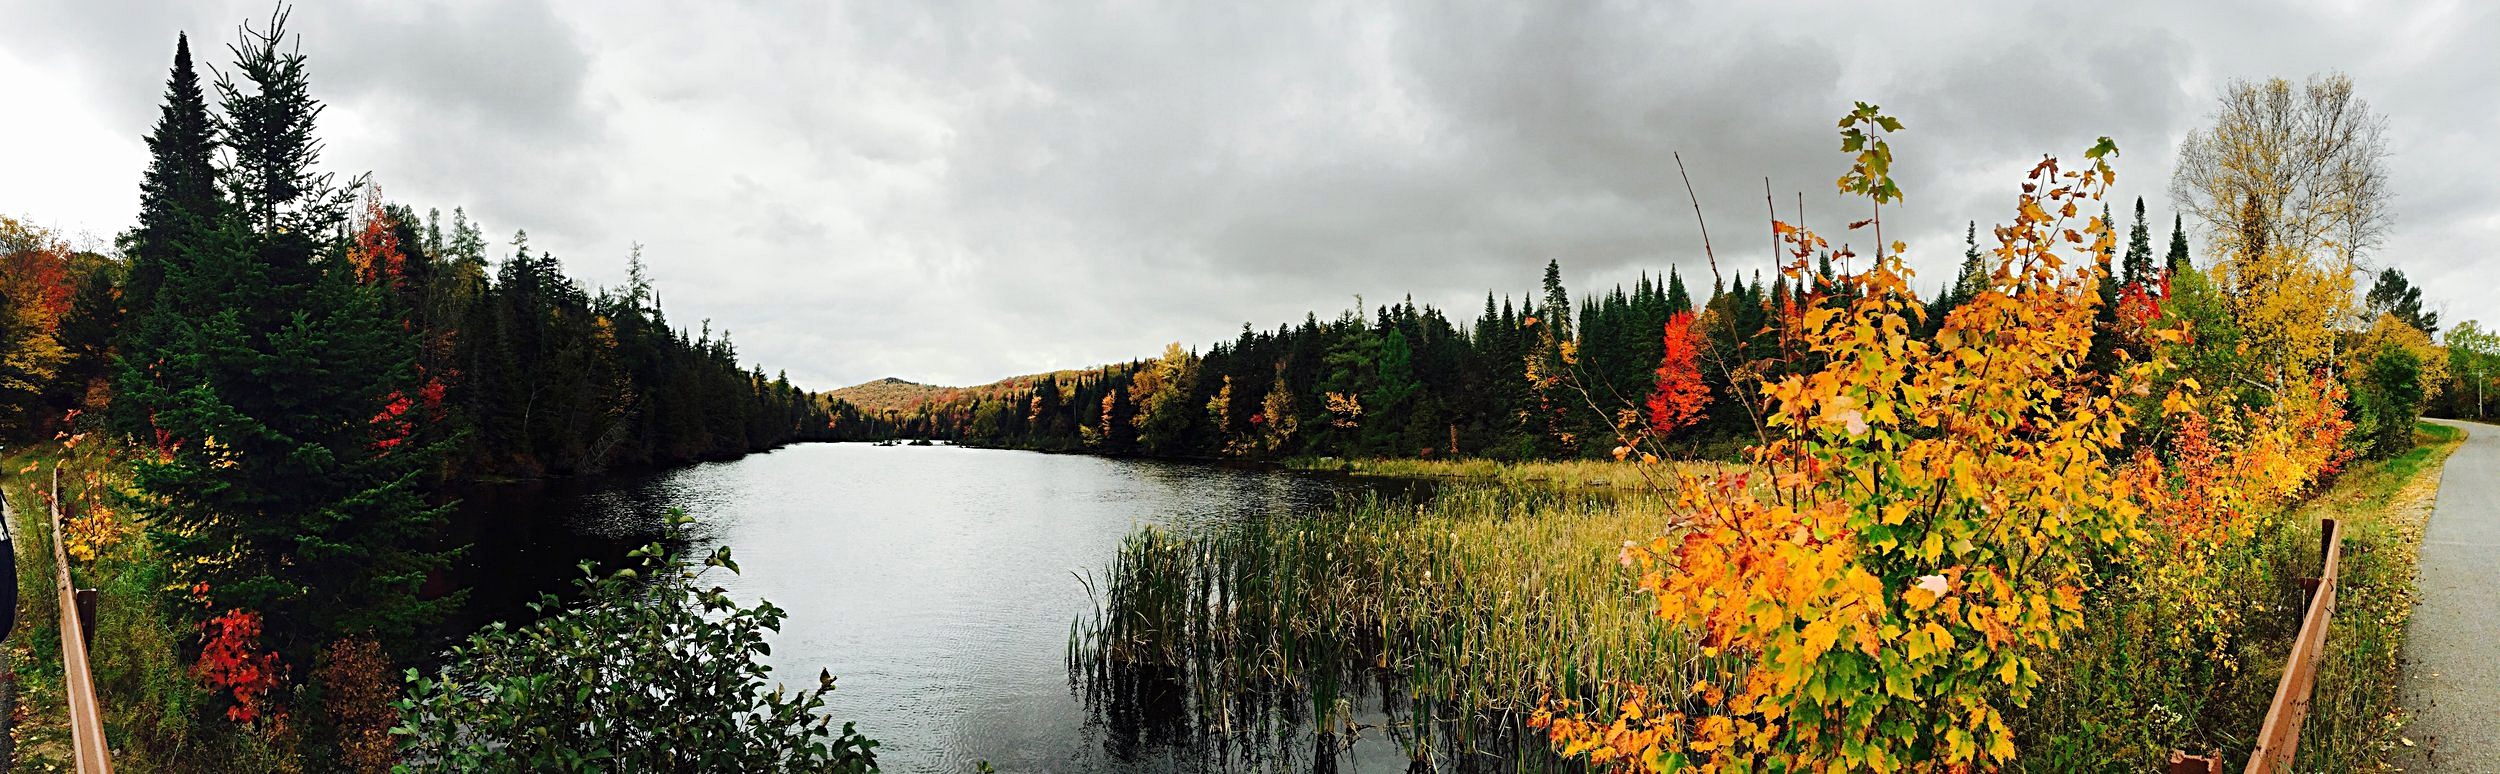 South side of Mountain View Lake in Malone, N.Y.  (Chelsia Rose Marcius/Oct. 9, 2016)